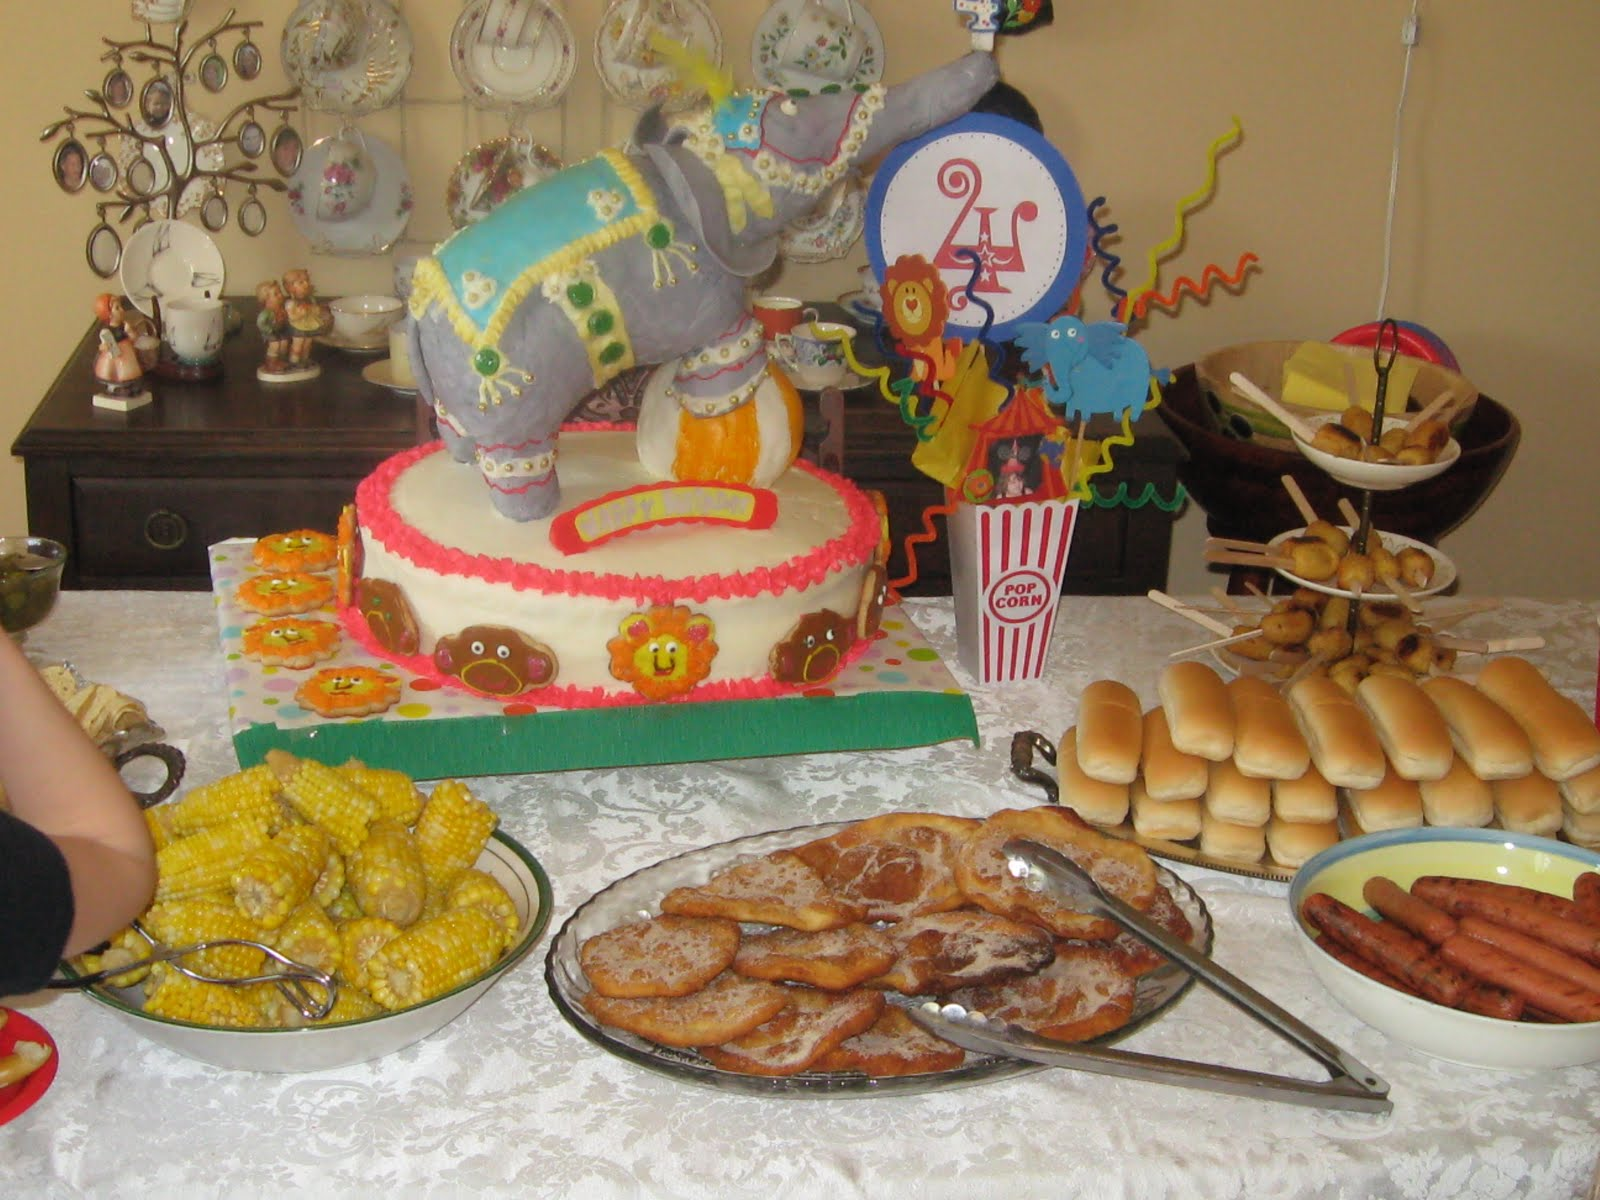 Carnival food ideas 28 images carnival party ideas caden s 2nd birthday party carnival - Carnival foods ideas ...